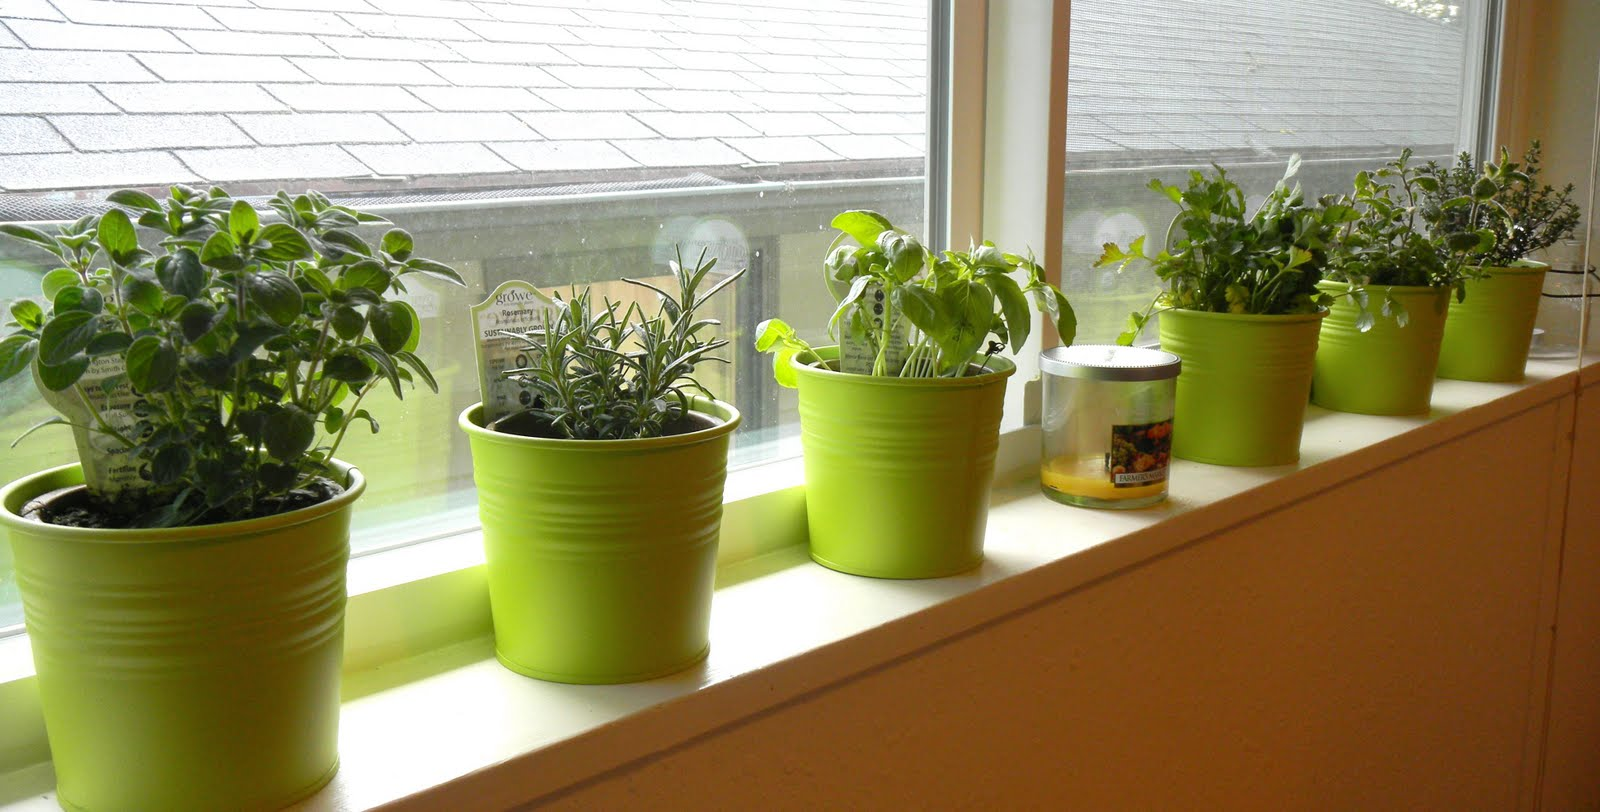 Cornwall capers windowsill herbs Kitchen windowsill herb pots